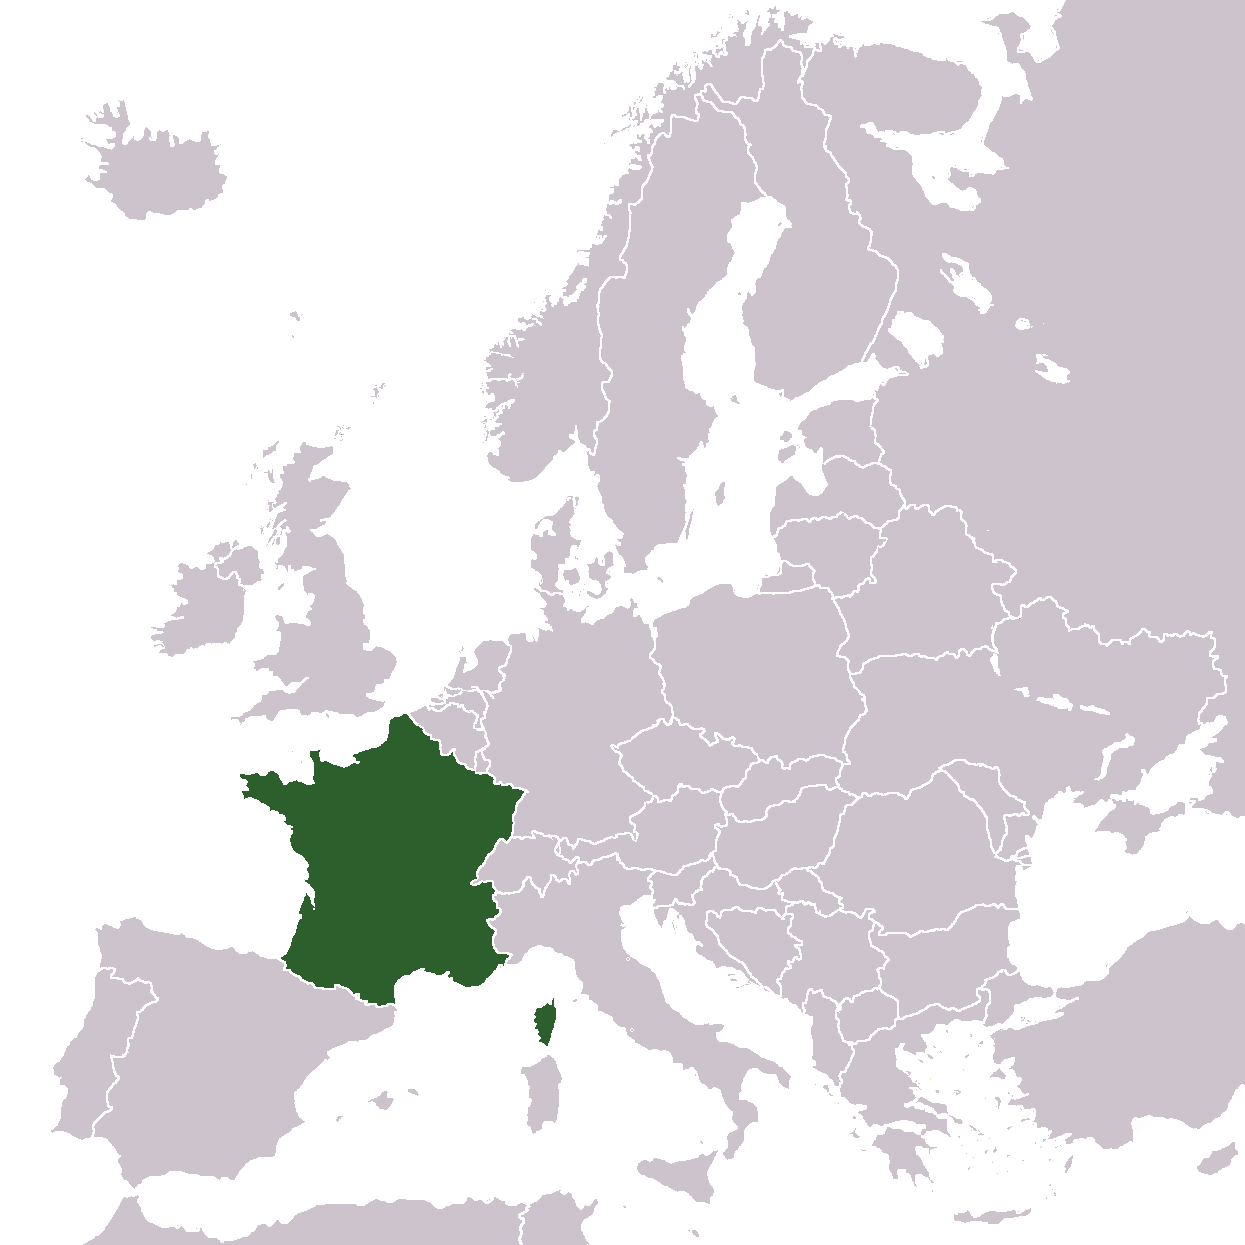 Europe Location France